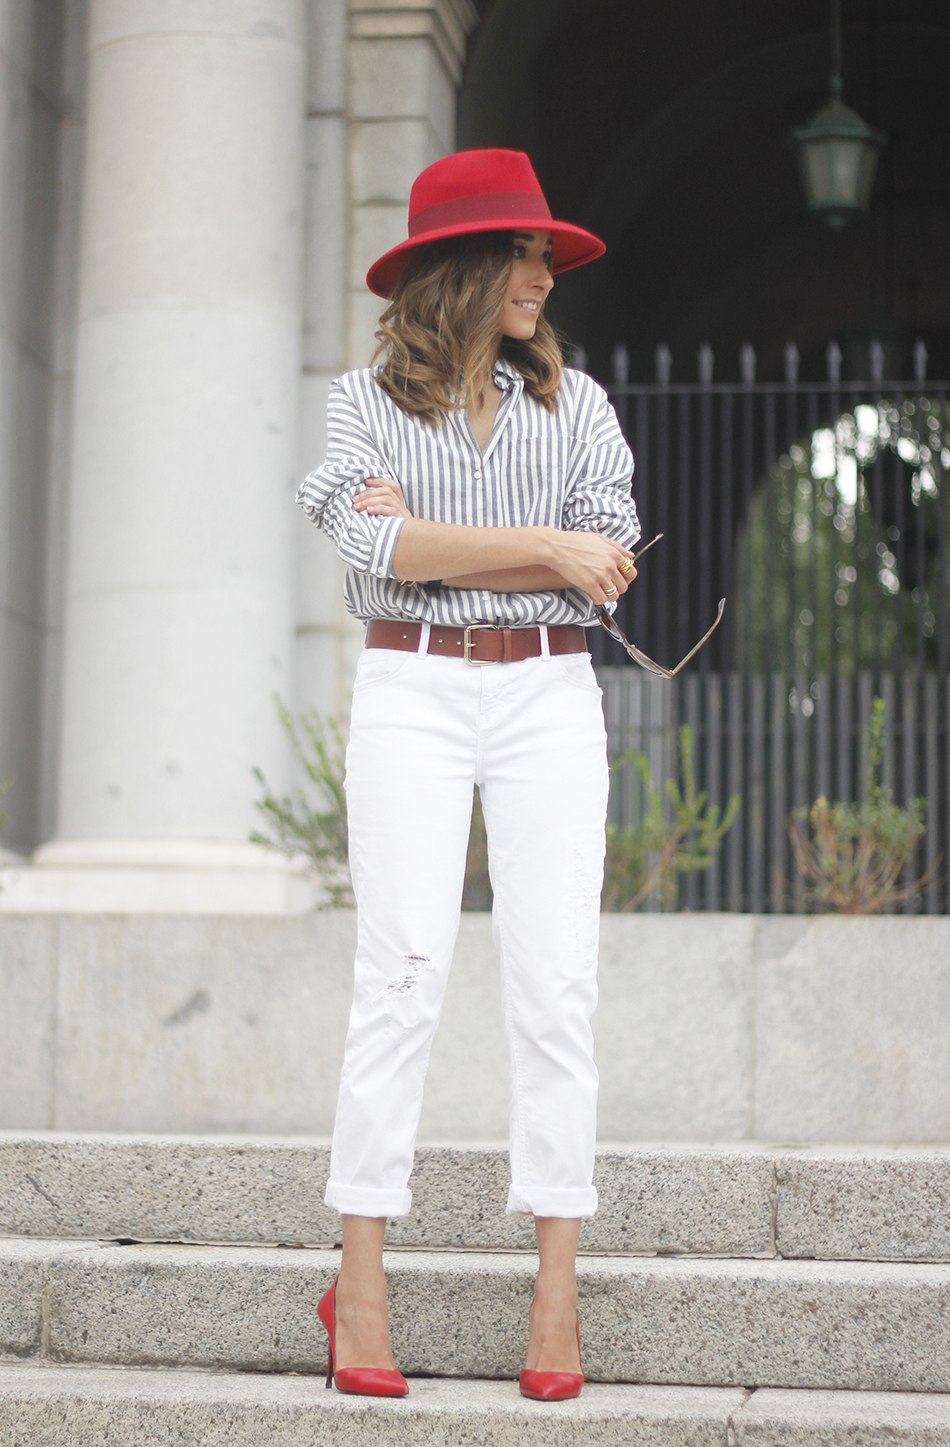 http://www.besugarandspice.com/2015/09/red-hat-red-shoes.html/